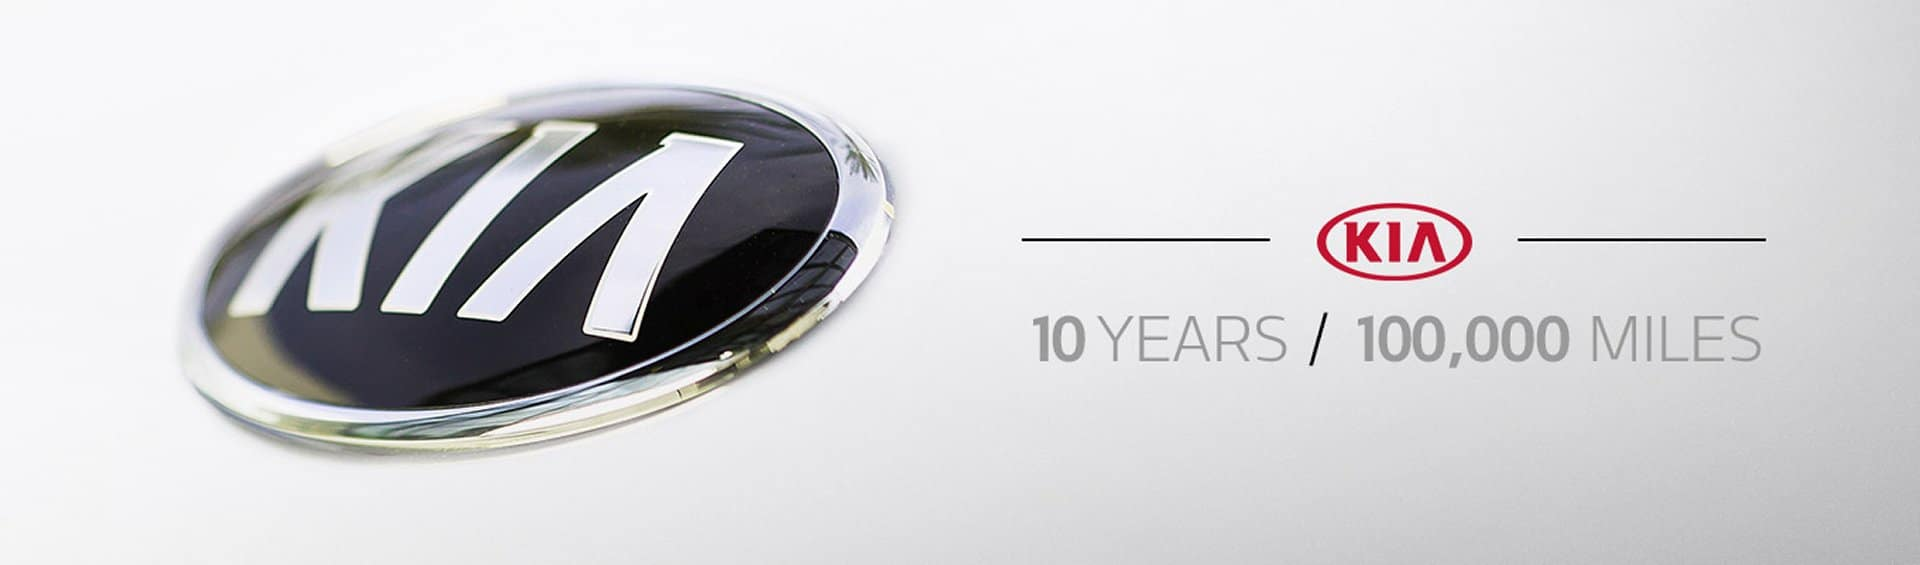 Kia's leading 10 year 100,000 Mile warranty included on every new Kia